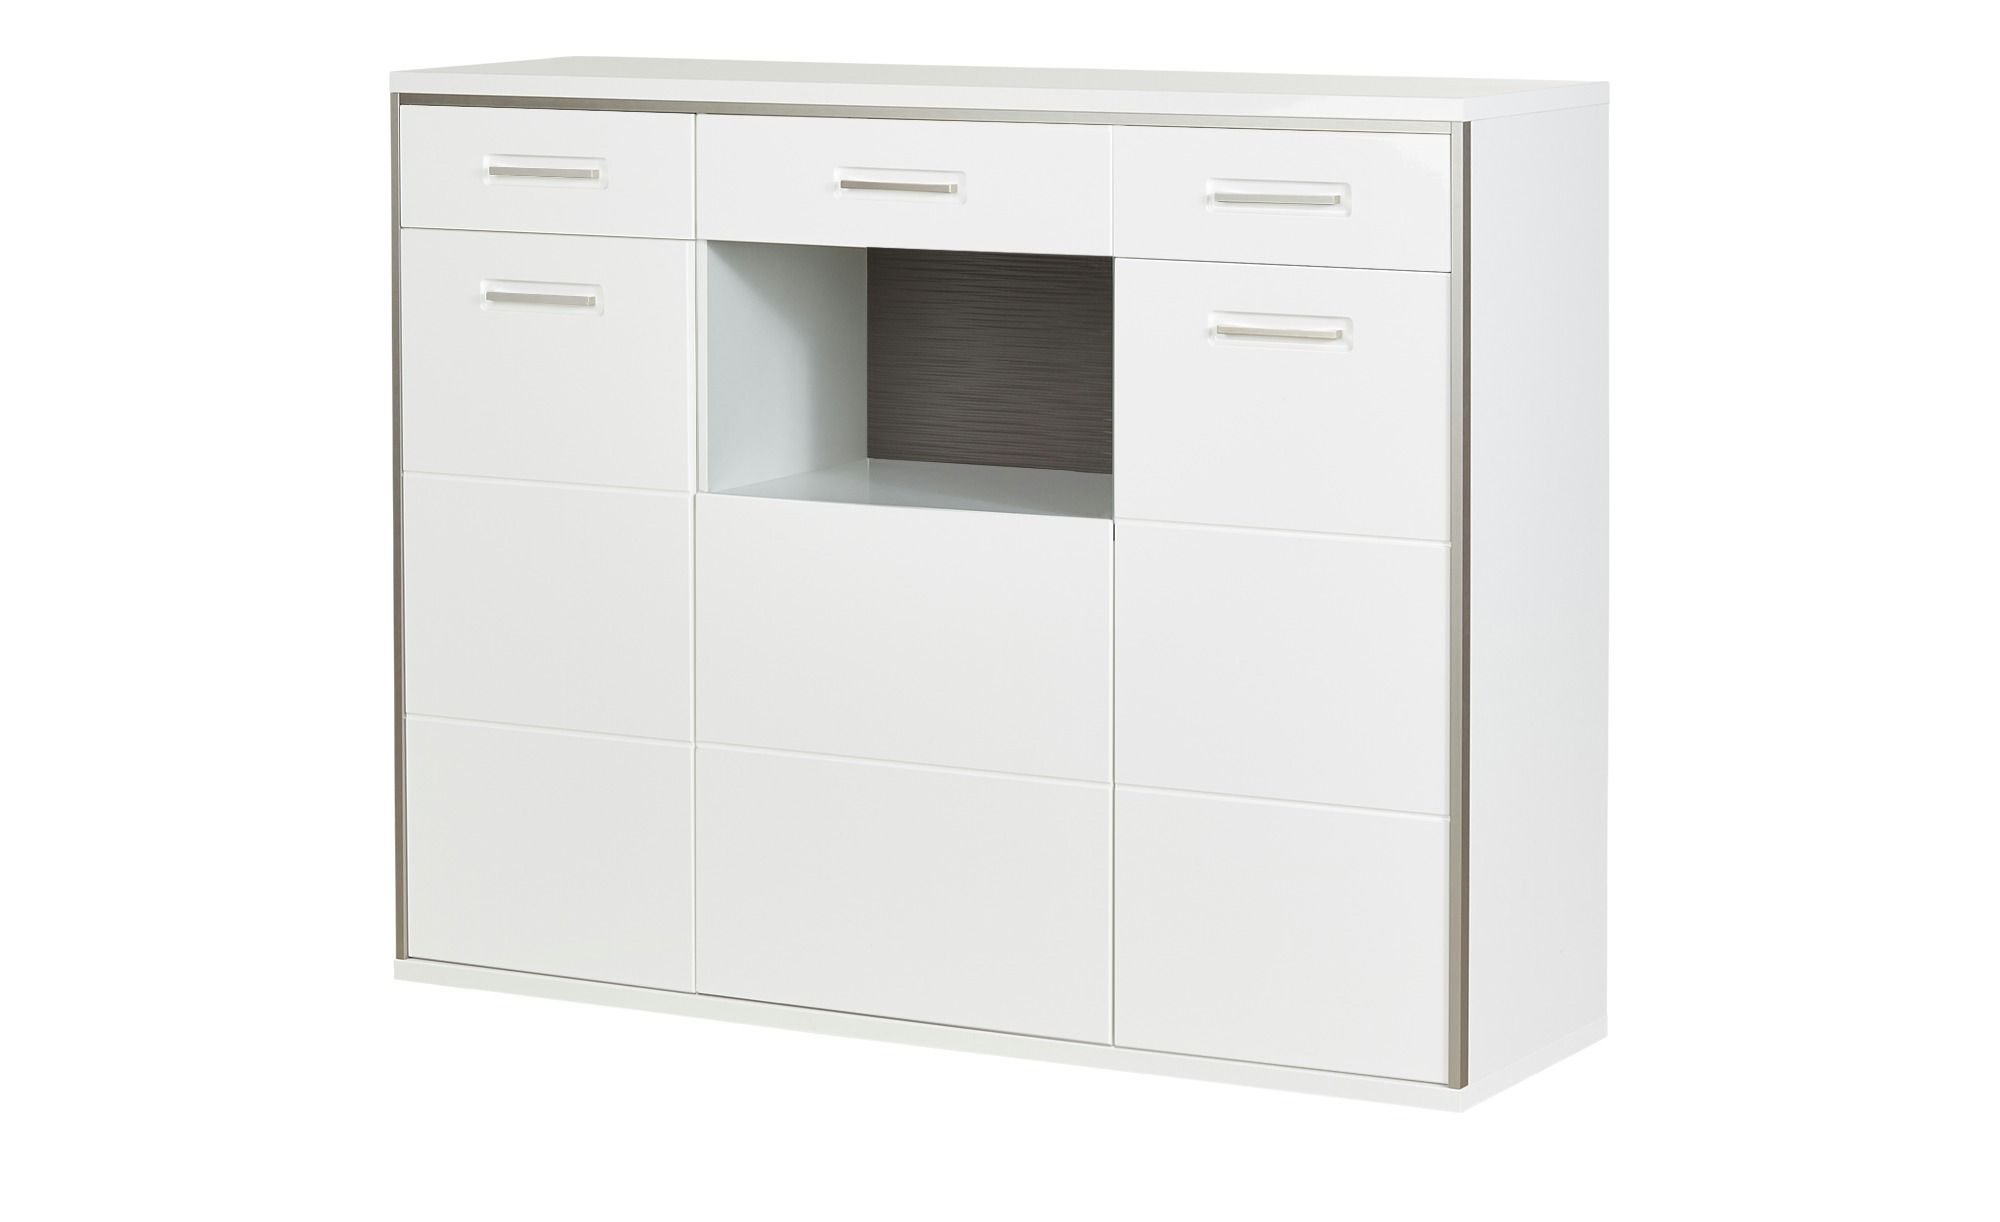 uno Highboard Setto ¦ weiß ¦ Maße (cm) B 154 H 121 T